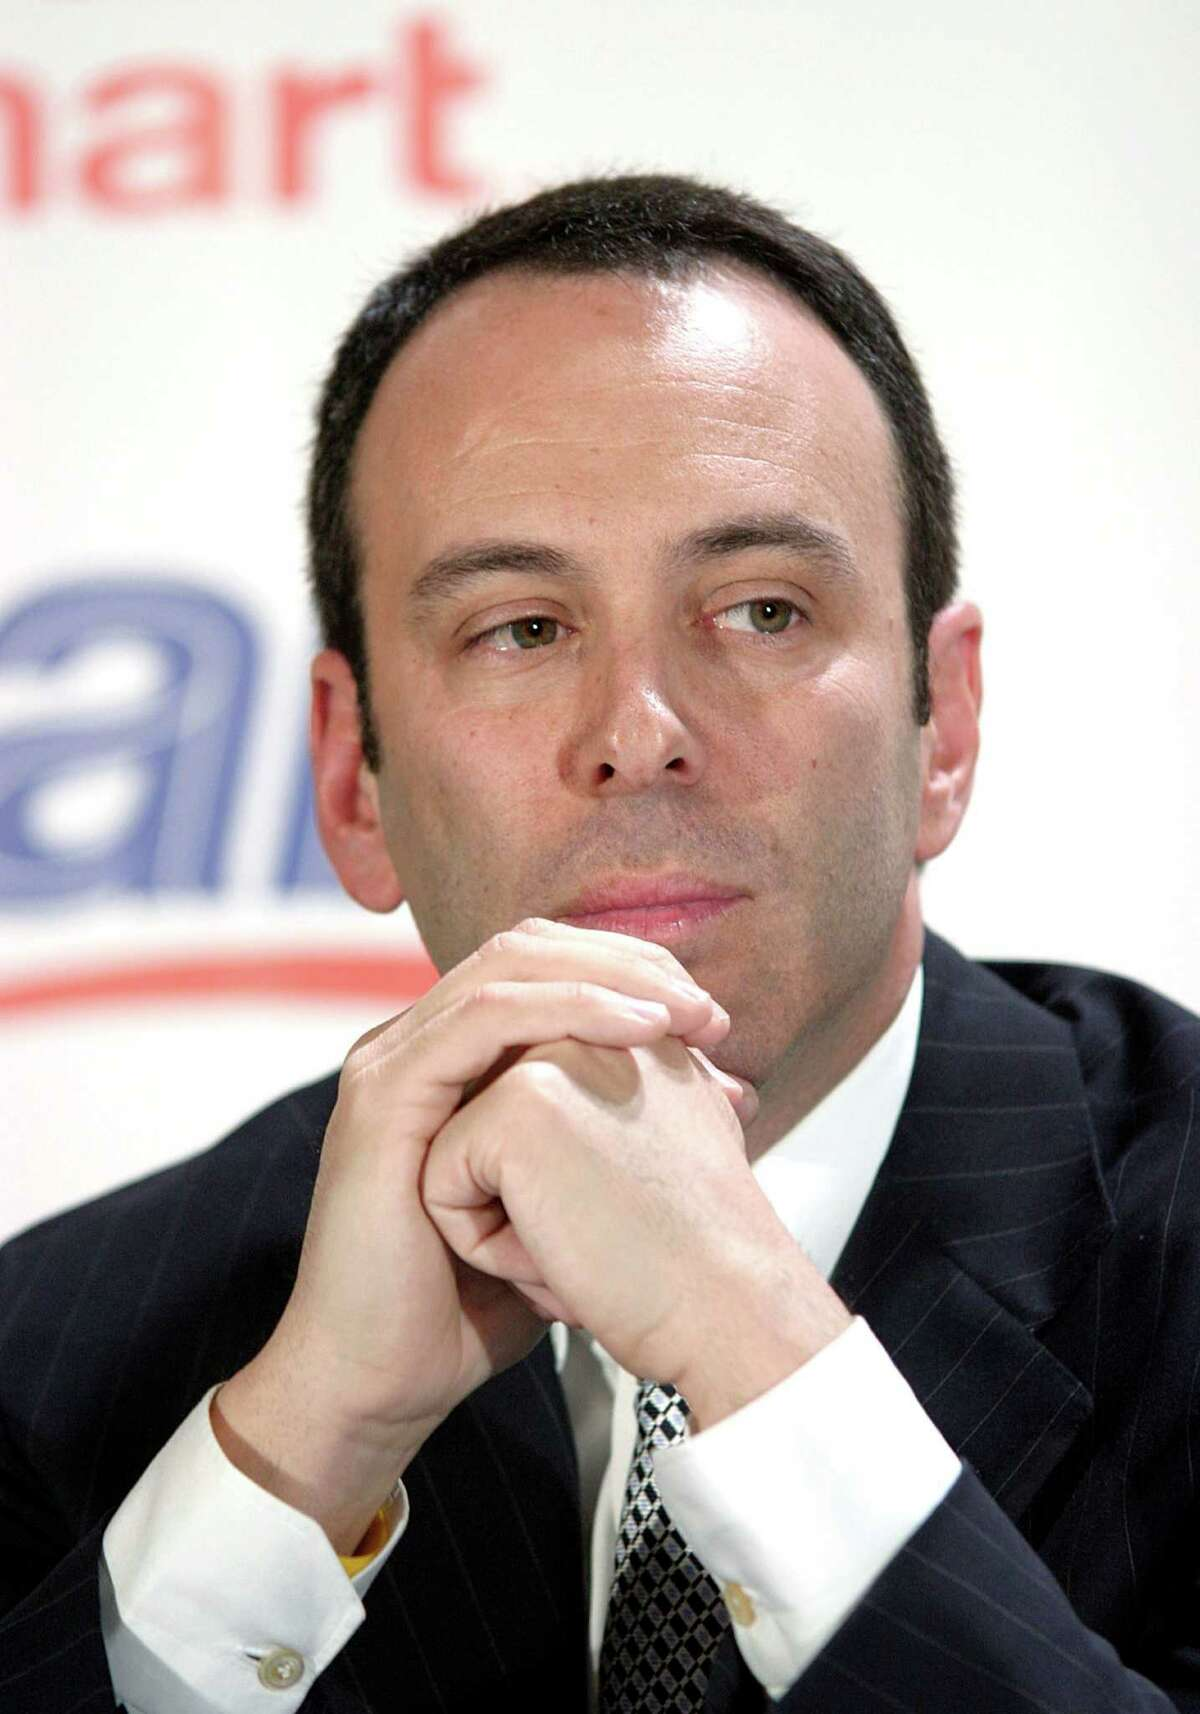 Edward Lampert is the founder of ESL investments, a hedge fund with offices on Greenwich Avenue, and chairman of Sears Holdings Corp. through his fund's controlling investment in the retail chain's parent company.